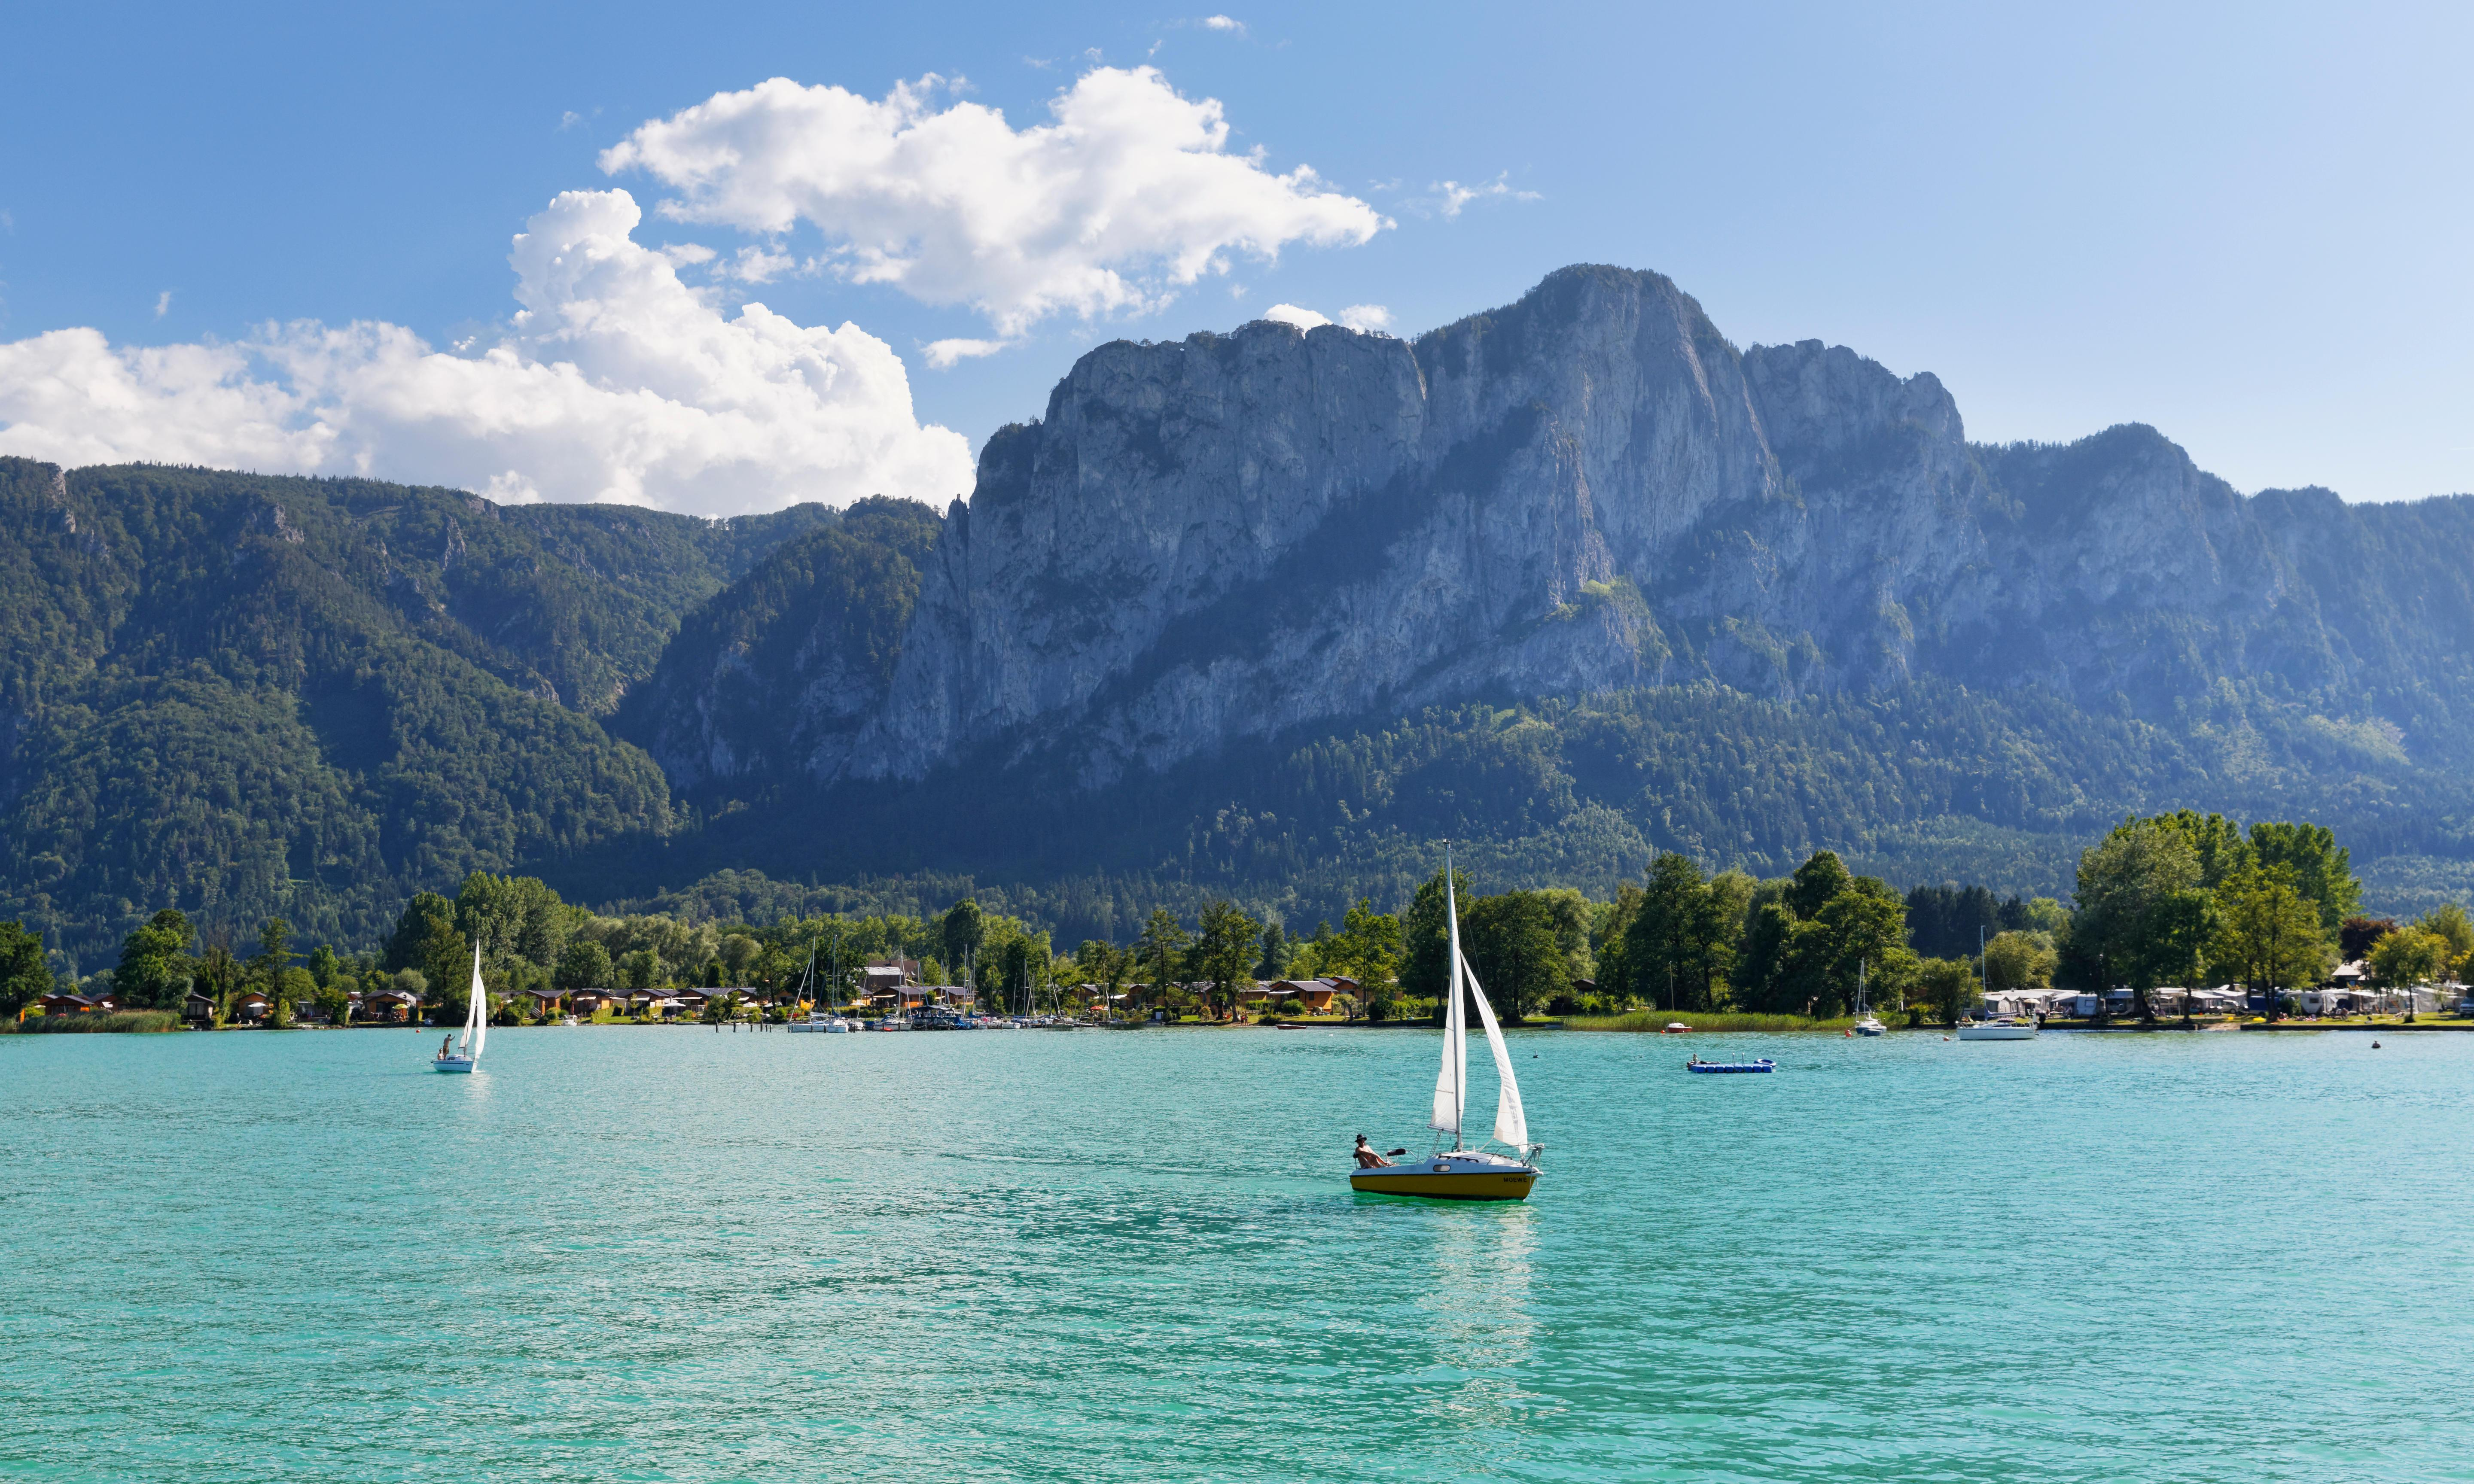 British man drowns in Austria after getting cramp while swimming